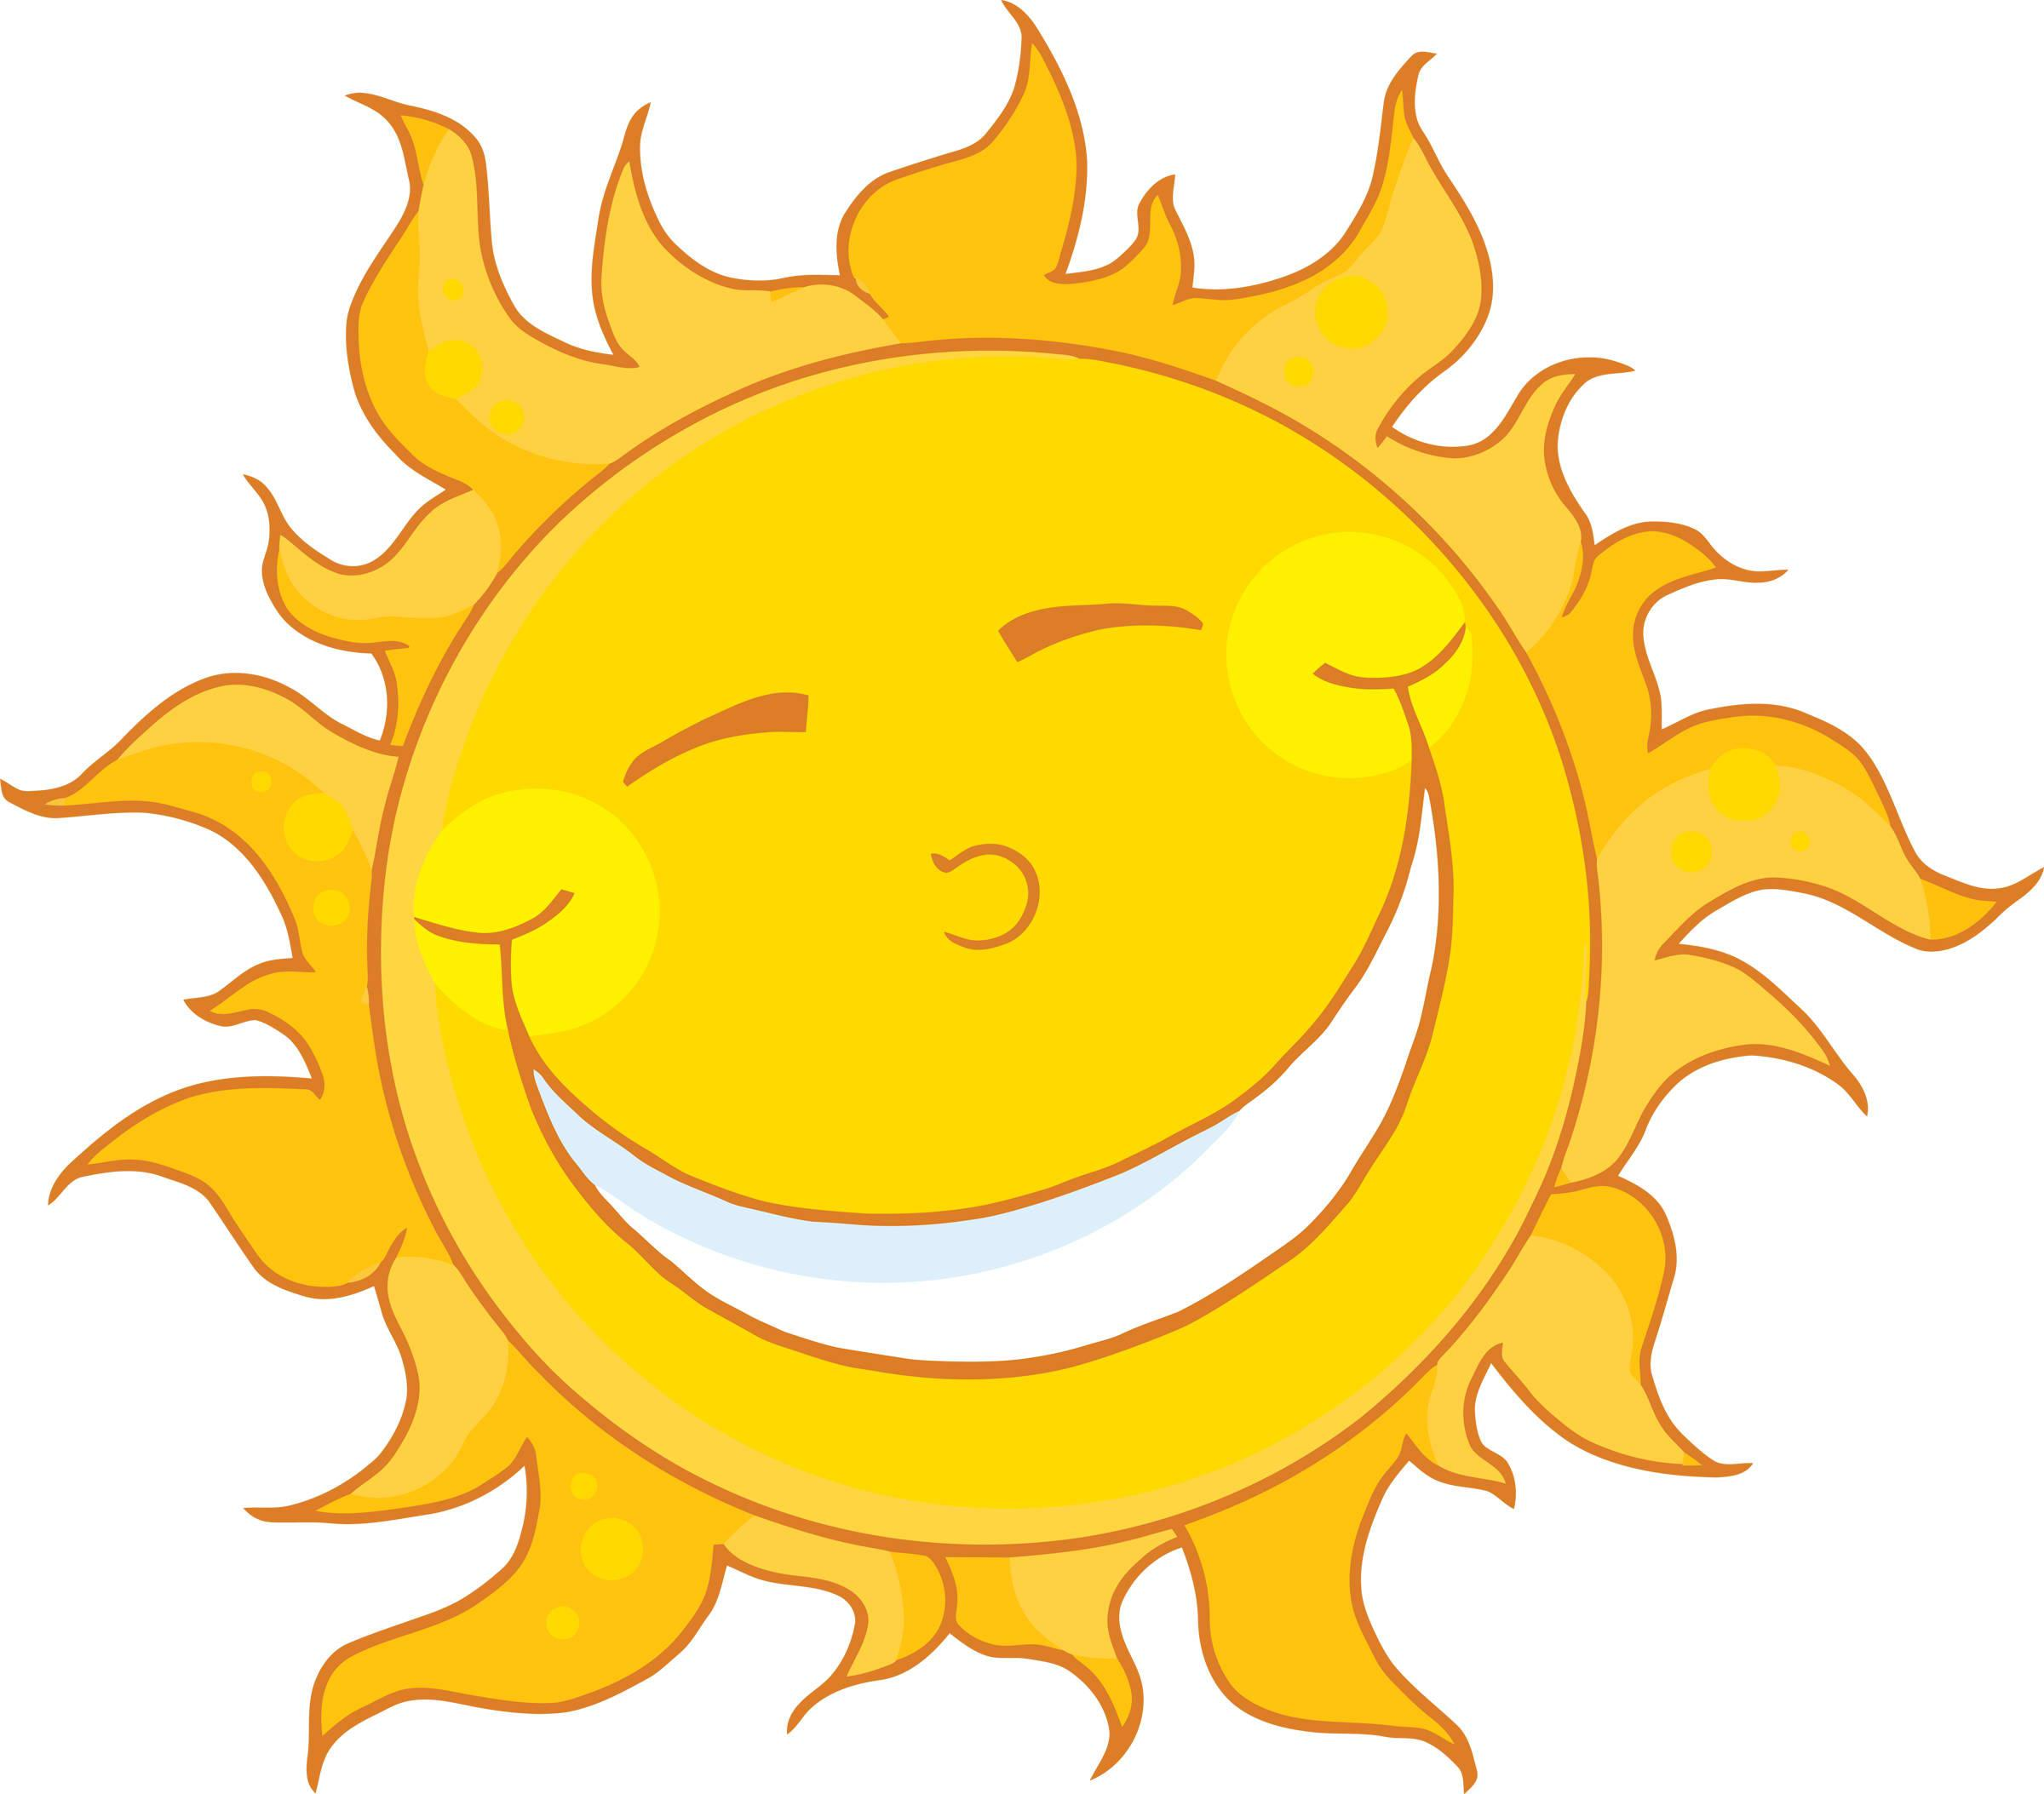 sunshine happy sun clipart rh clipart info sunshine clip art footers sunshine clip art images